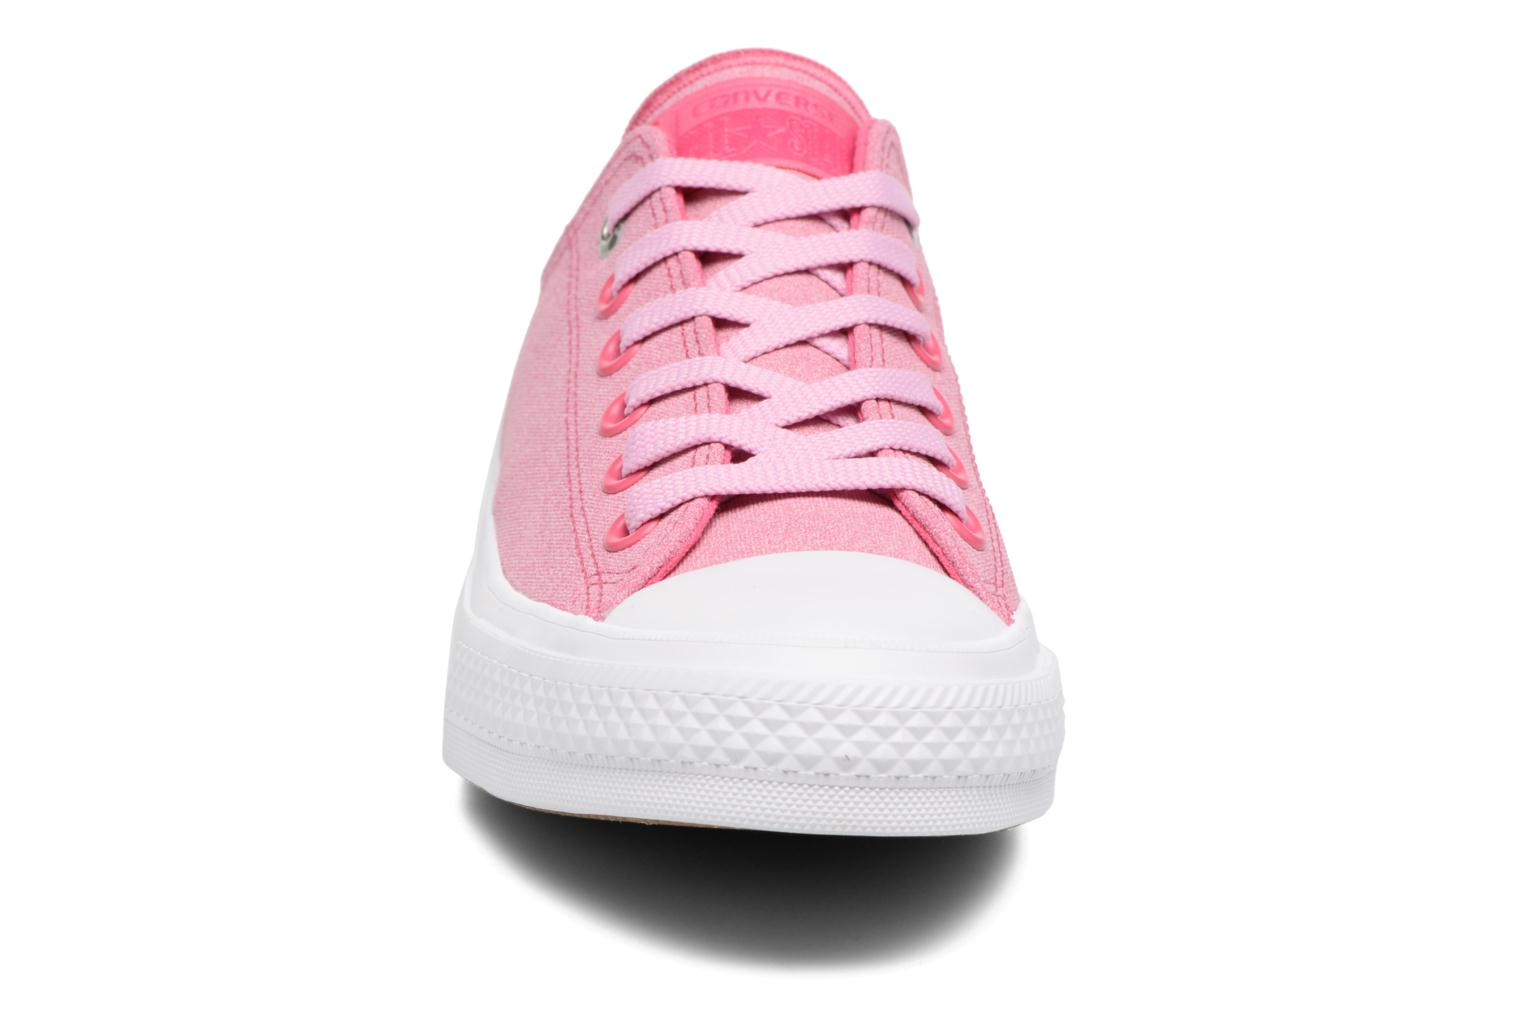 Chuck II Two-Tone Leather Ox W Vivid Pink/Icy Pink/White